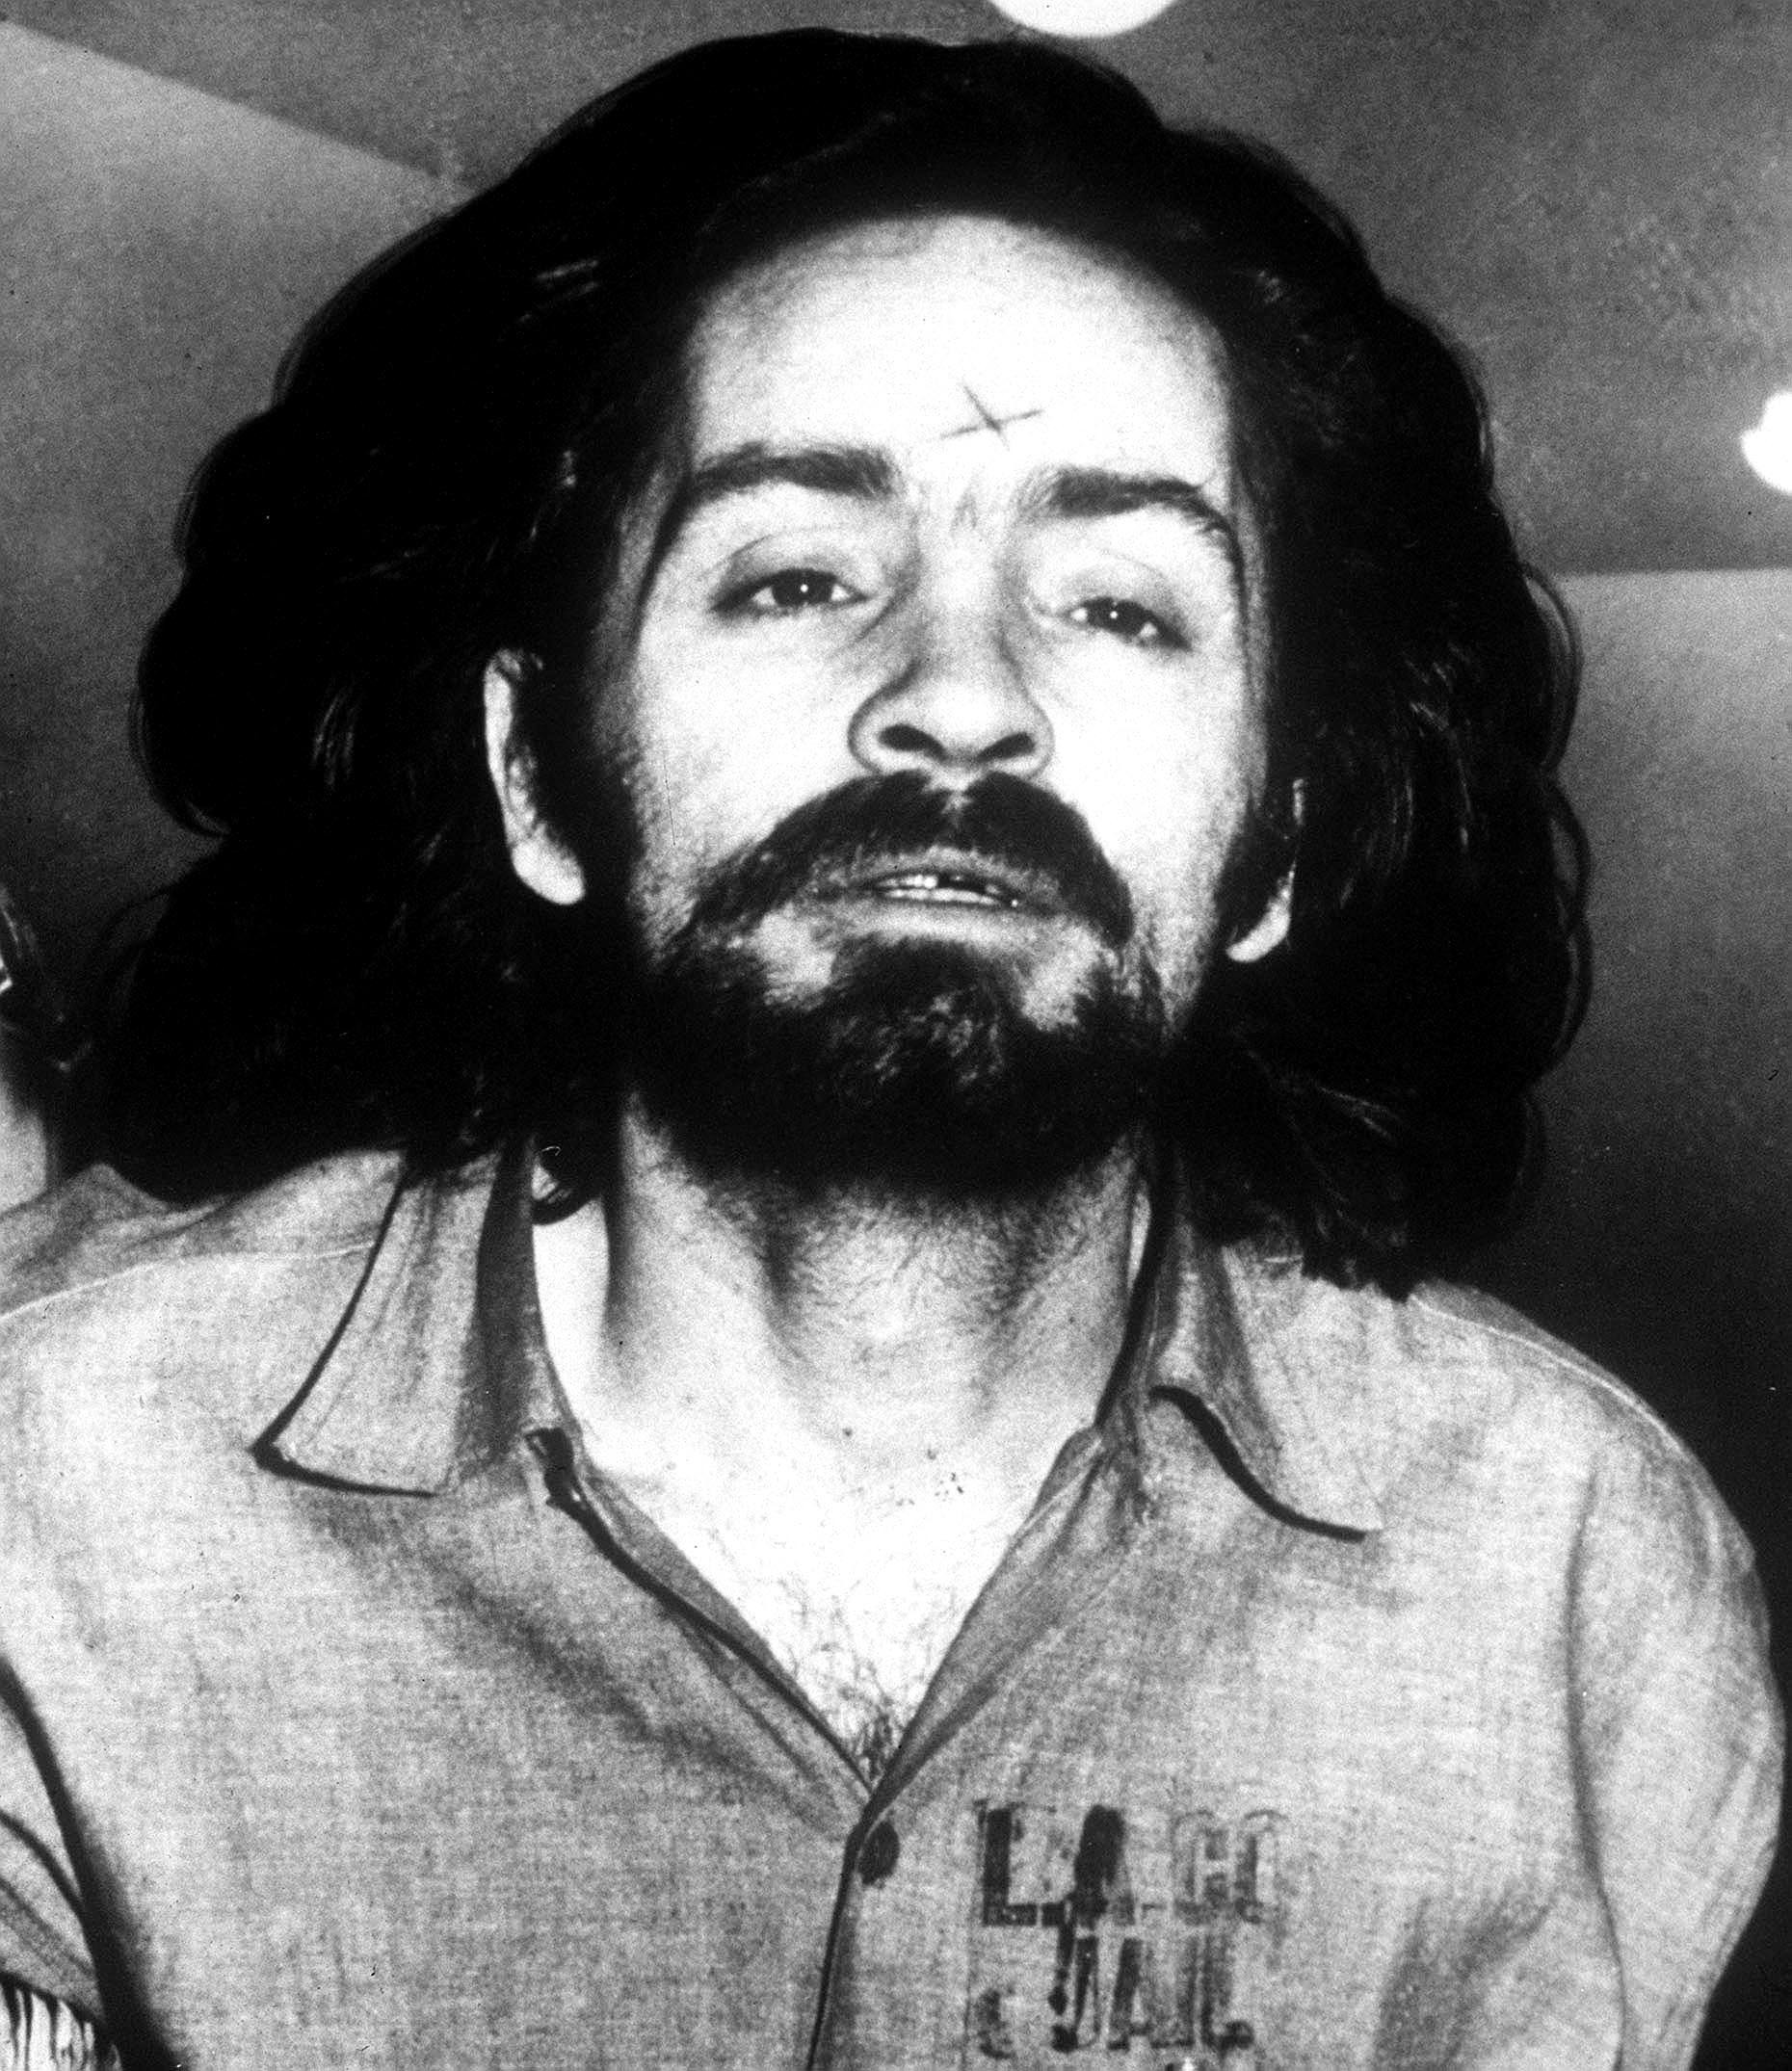 Cult leader Manson ordered four of his followers to kill. Credit: PA Images